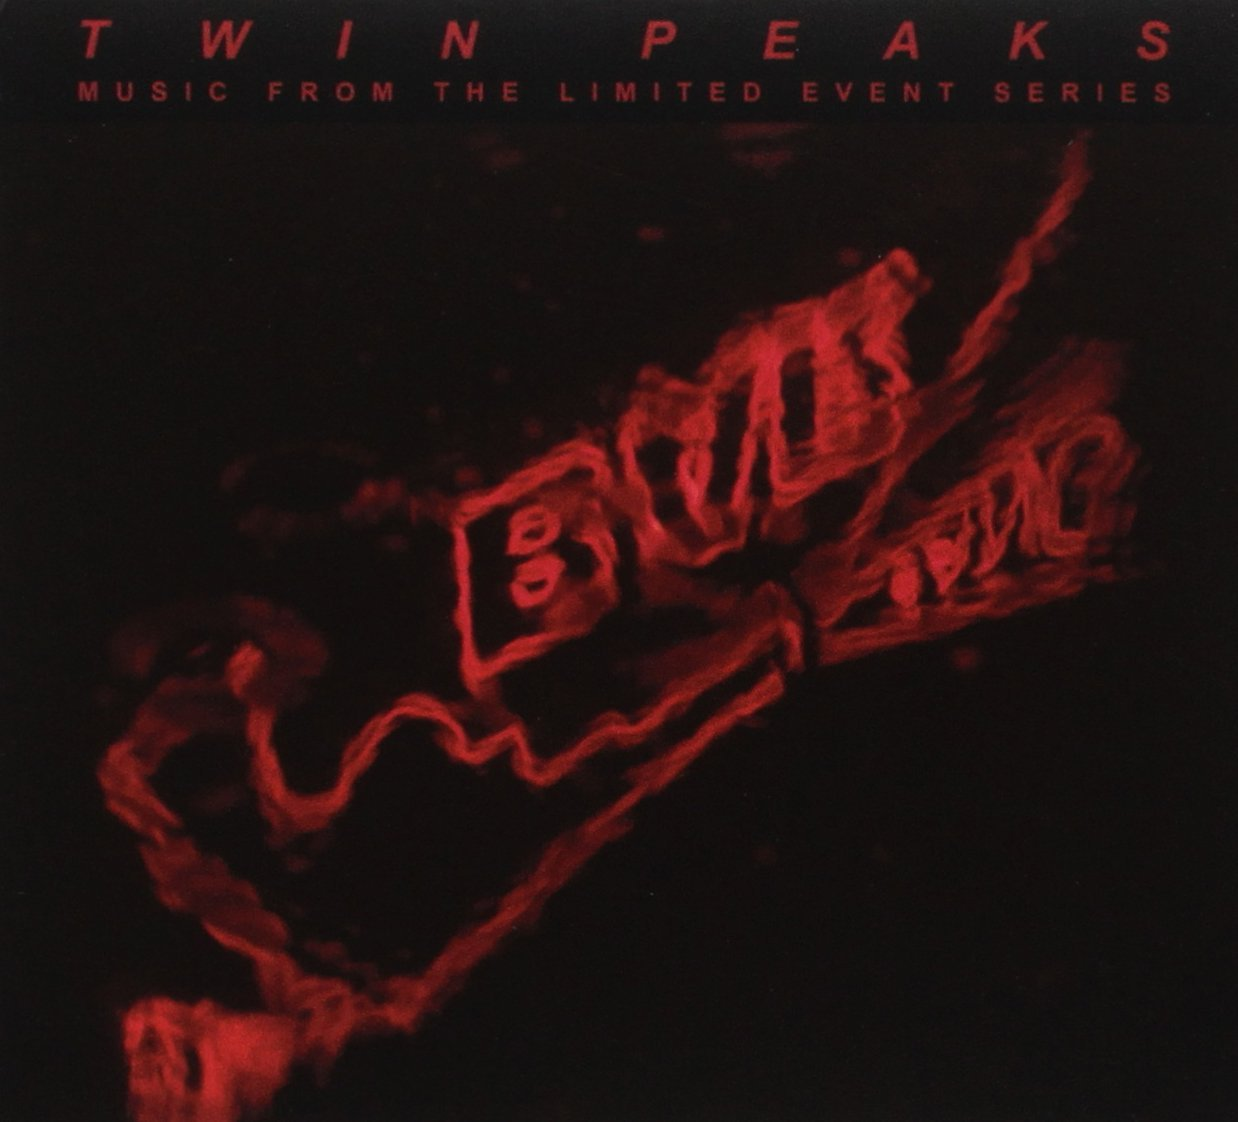 TWIN PEAKS (Music from the Limited Event Series)